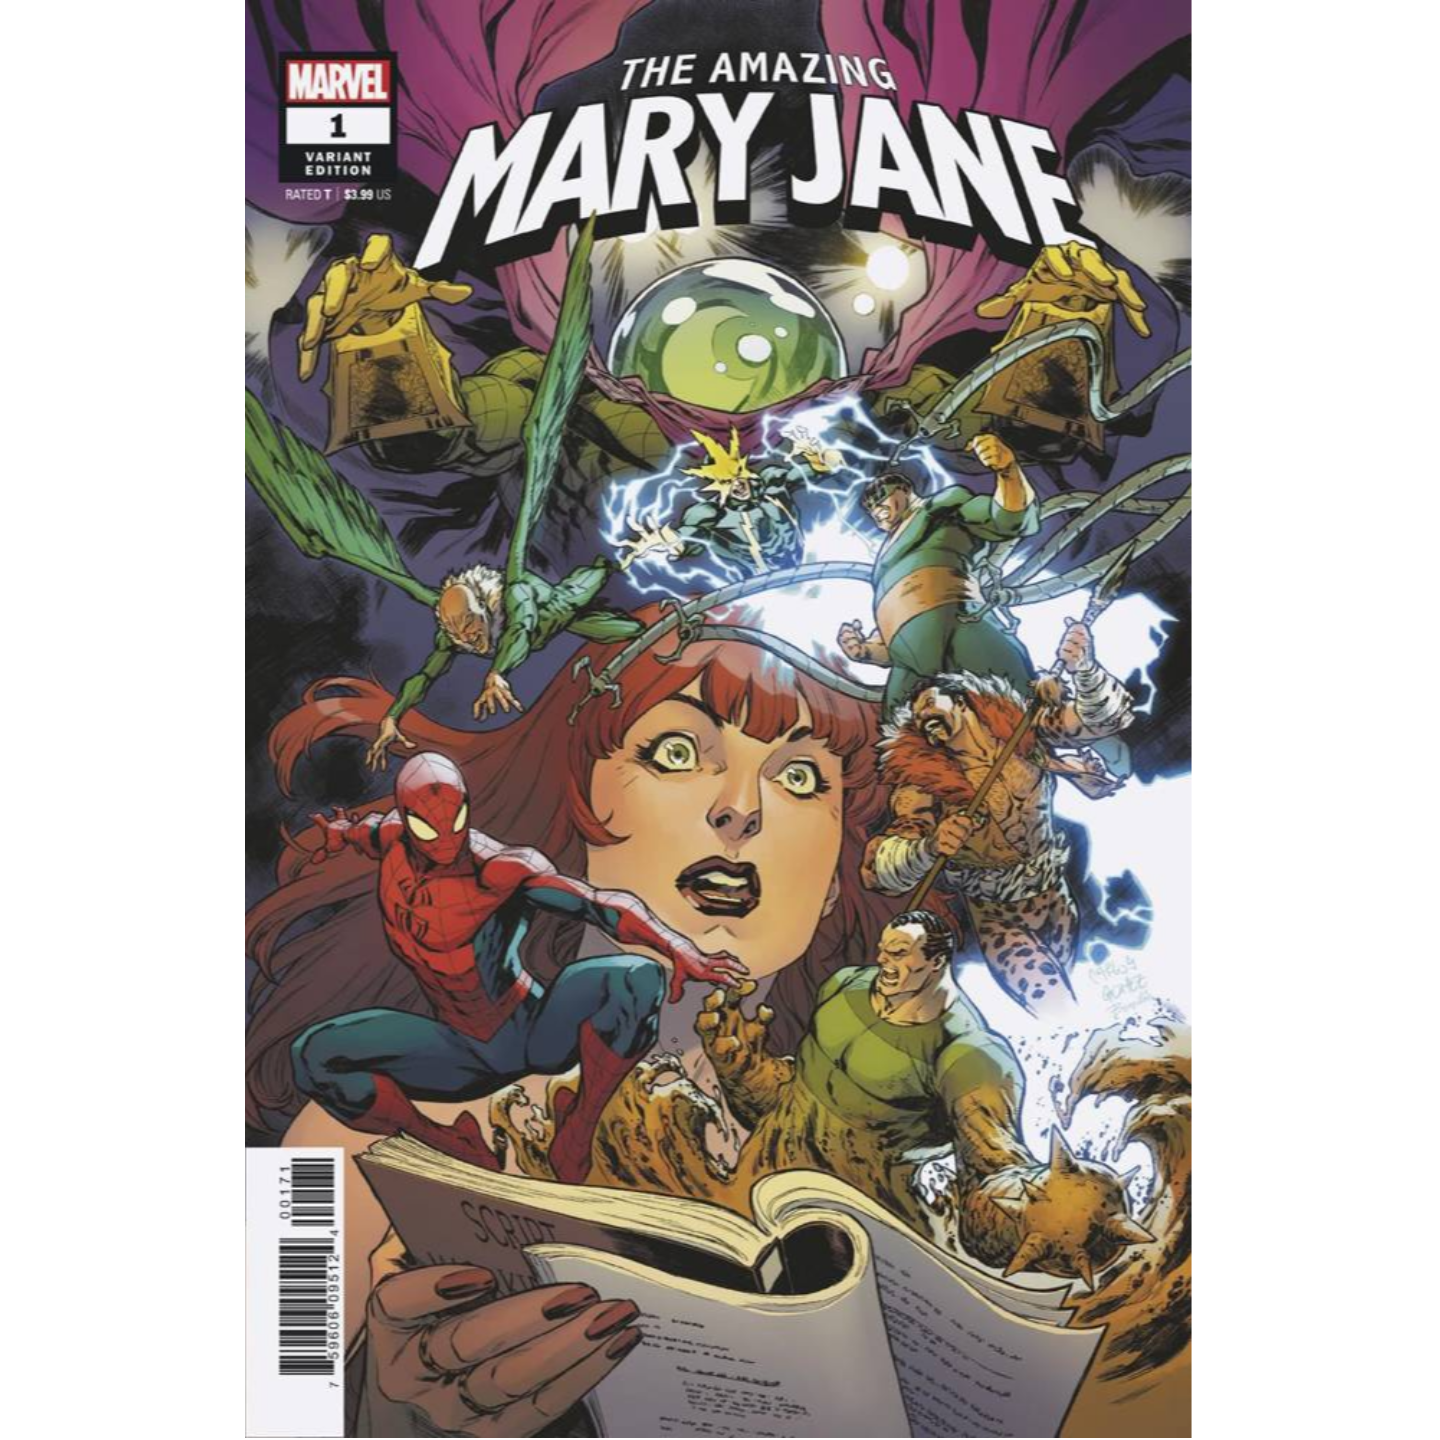 THE AMAZING MARY JANE 1 - GOMEZ VAR